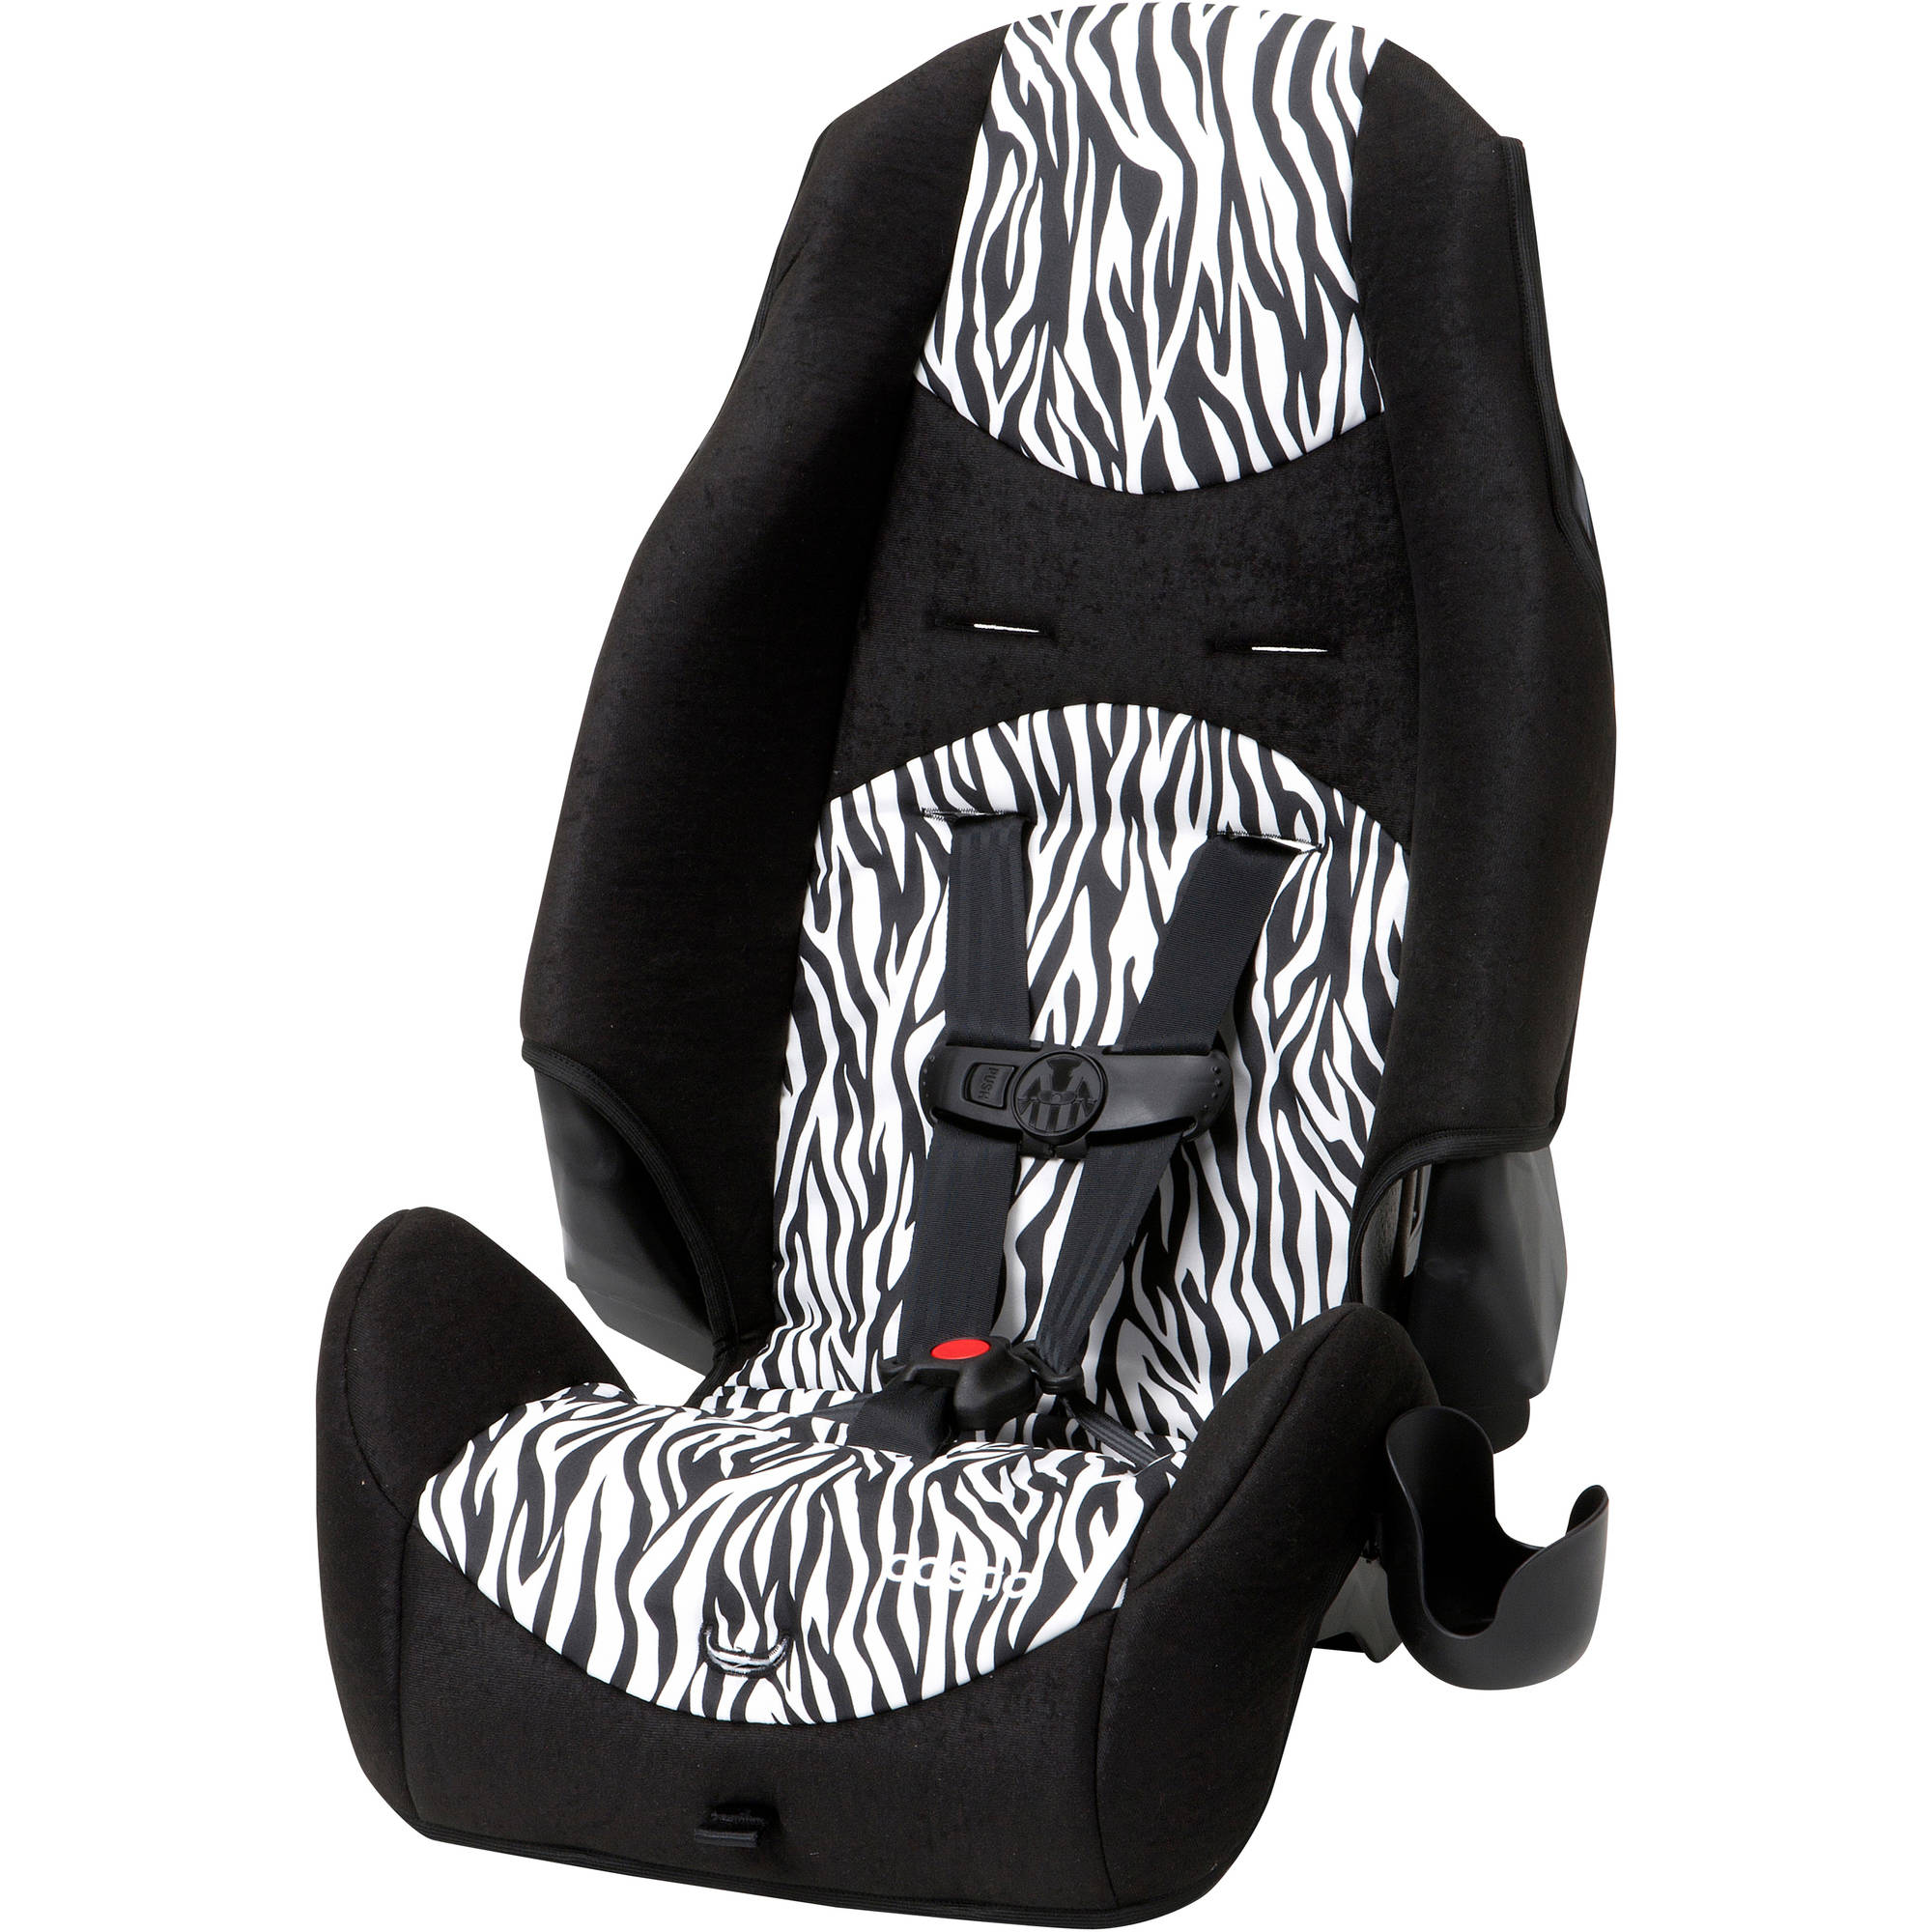 Cosco Highback 2-in-1 Booster Car Seat, Zahari